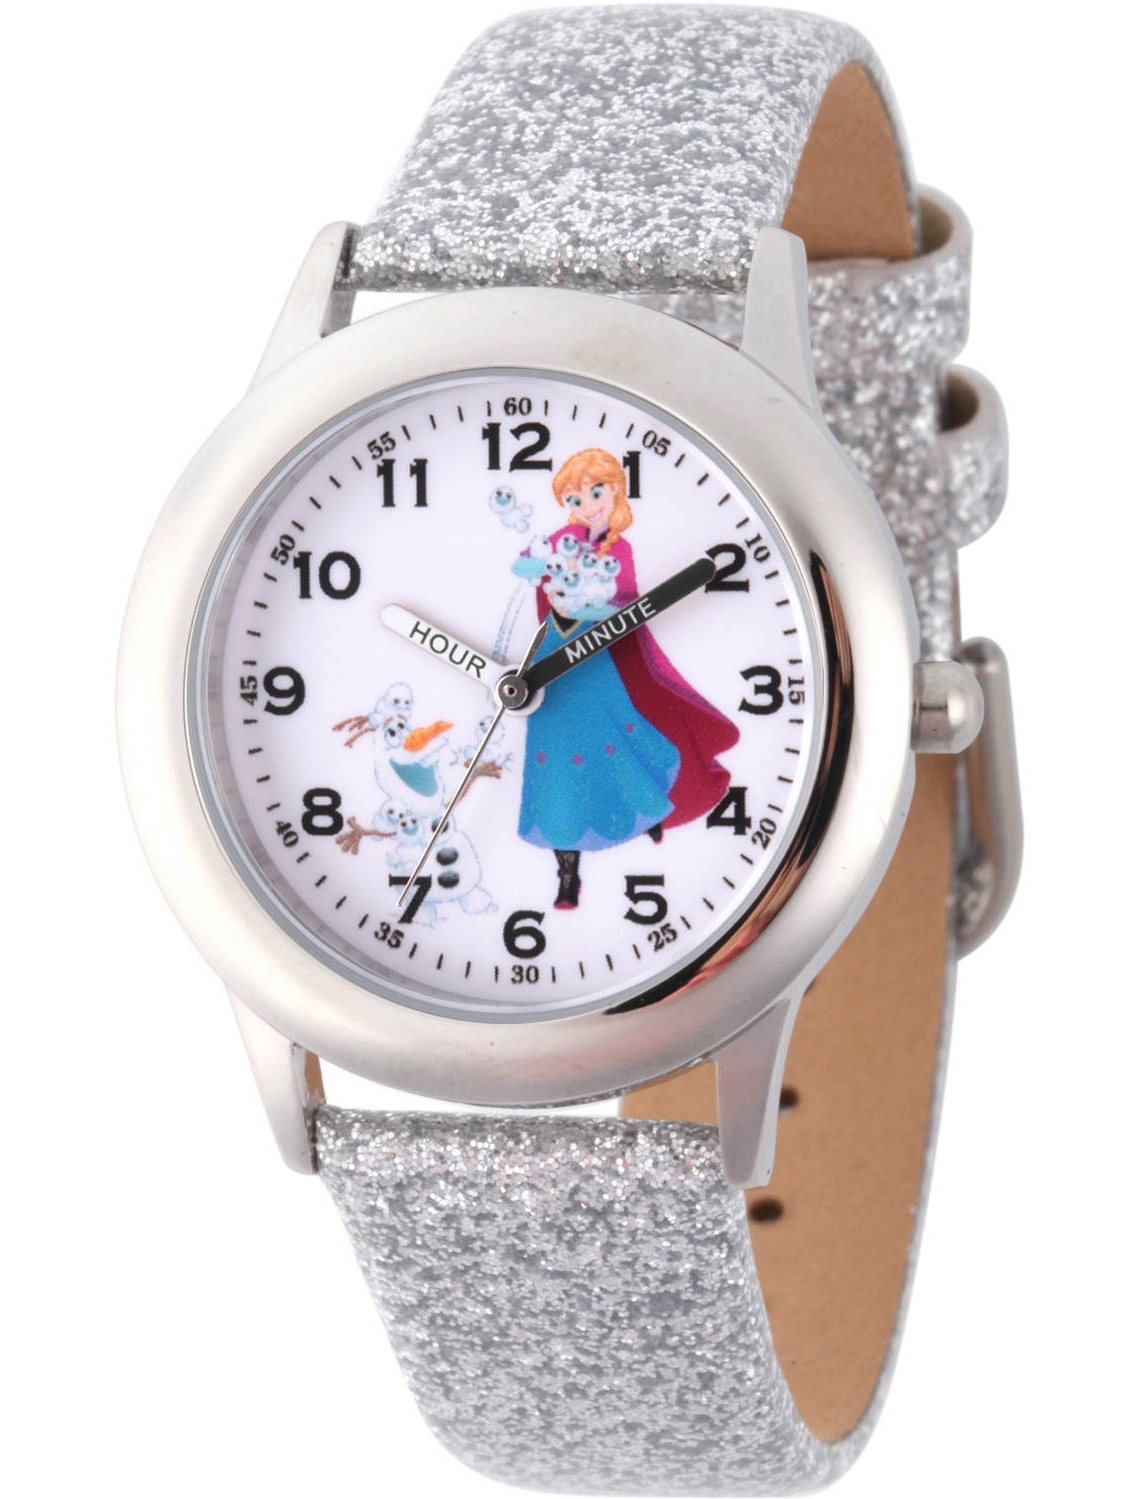 Disney Frozen Anna and Olaf Girls' Stainless Steel Time Teacher Watch, Silver Glitter Leather Strap